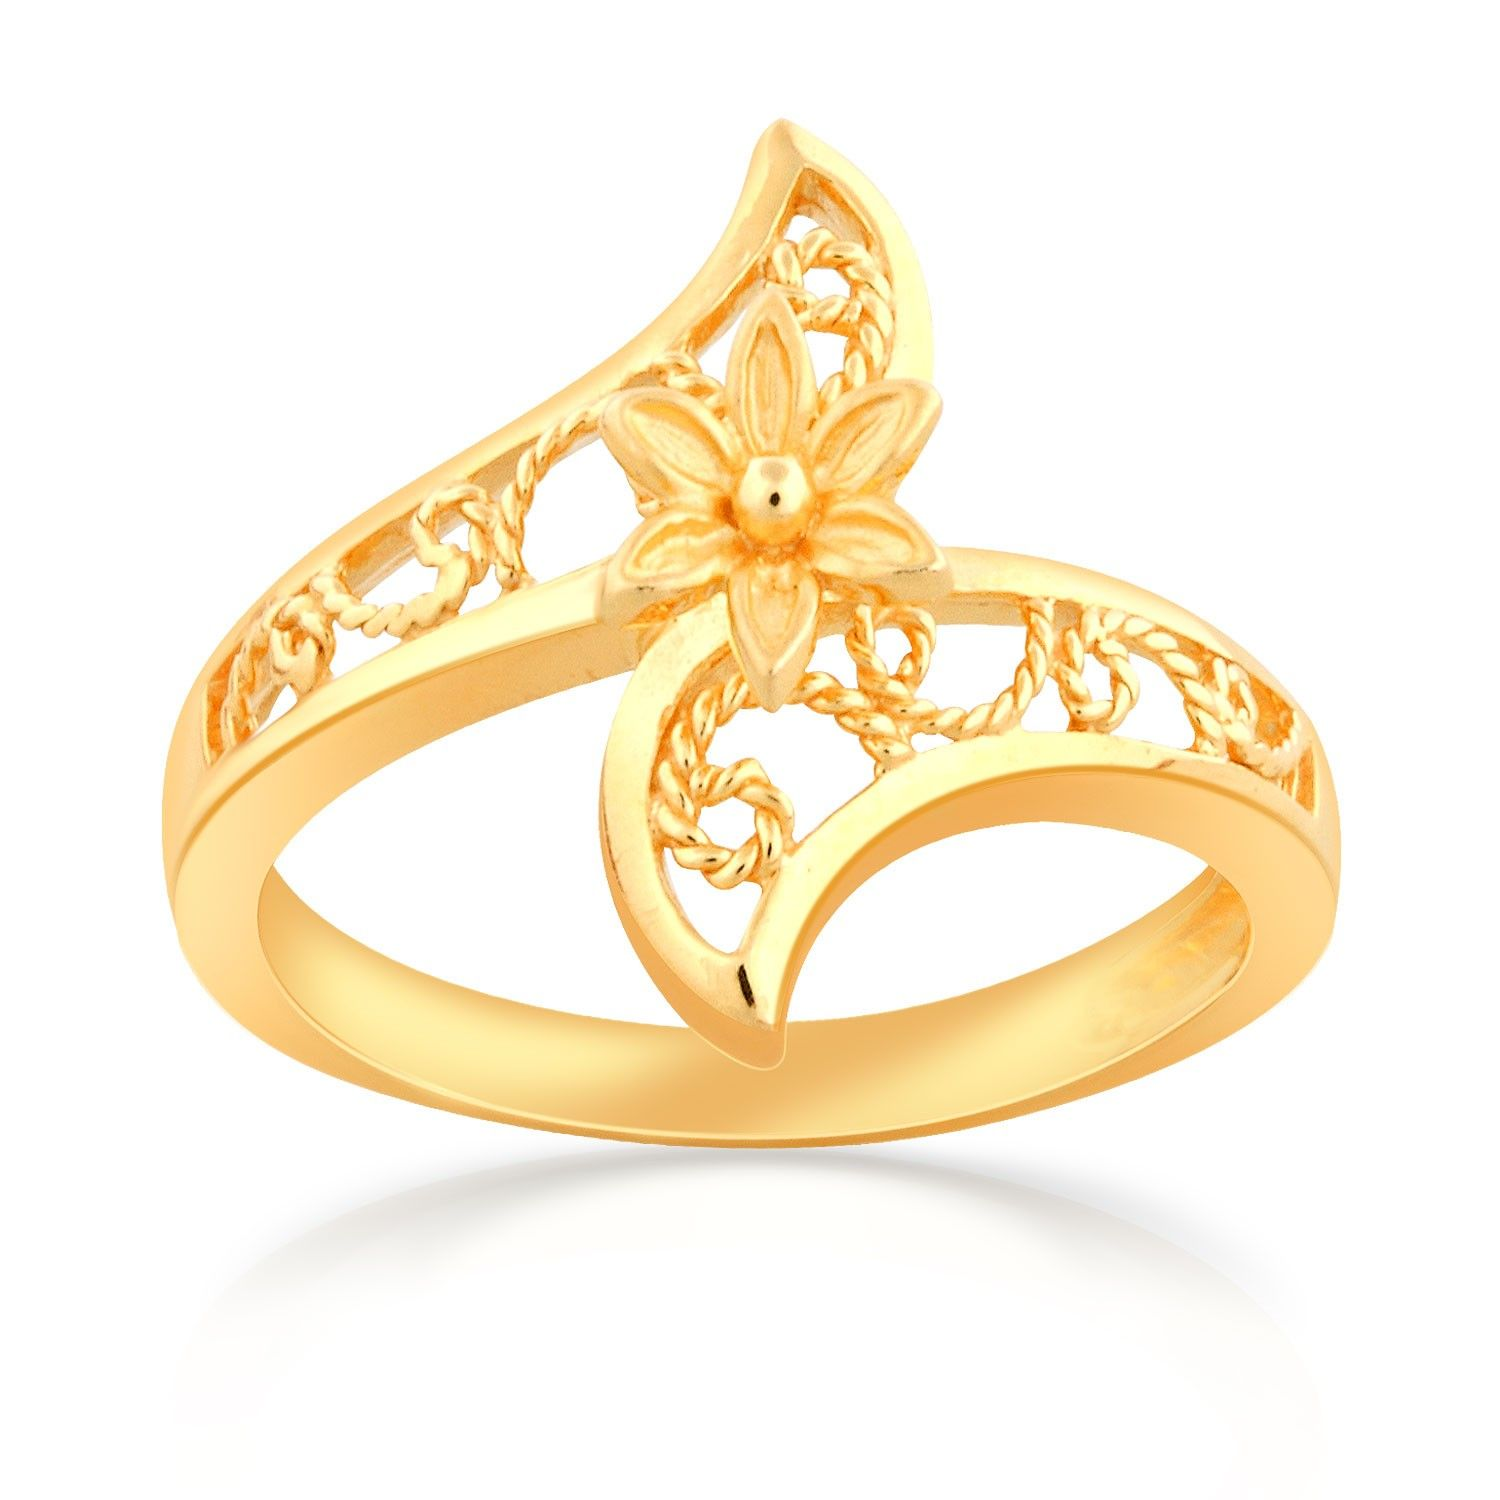 Nowadays, one need not take time out for gold ring shopping or to ...